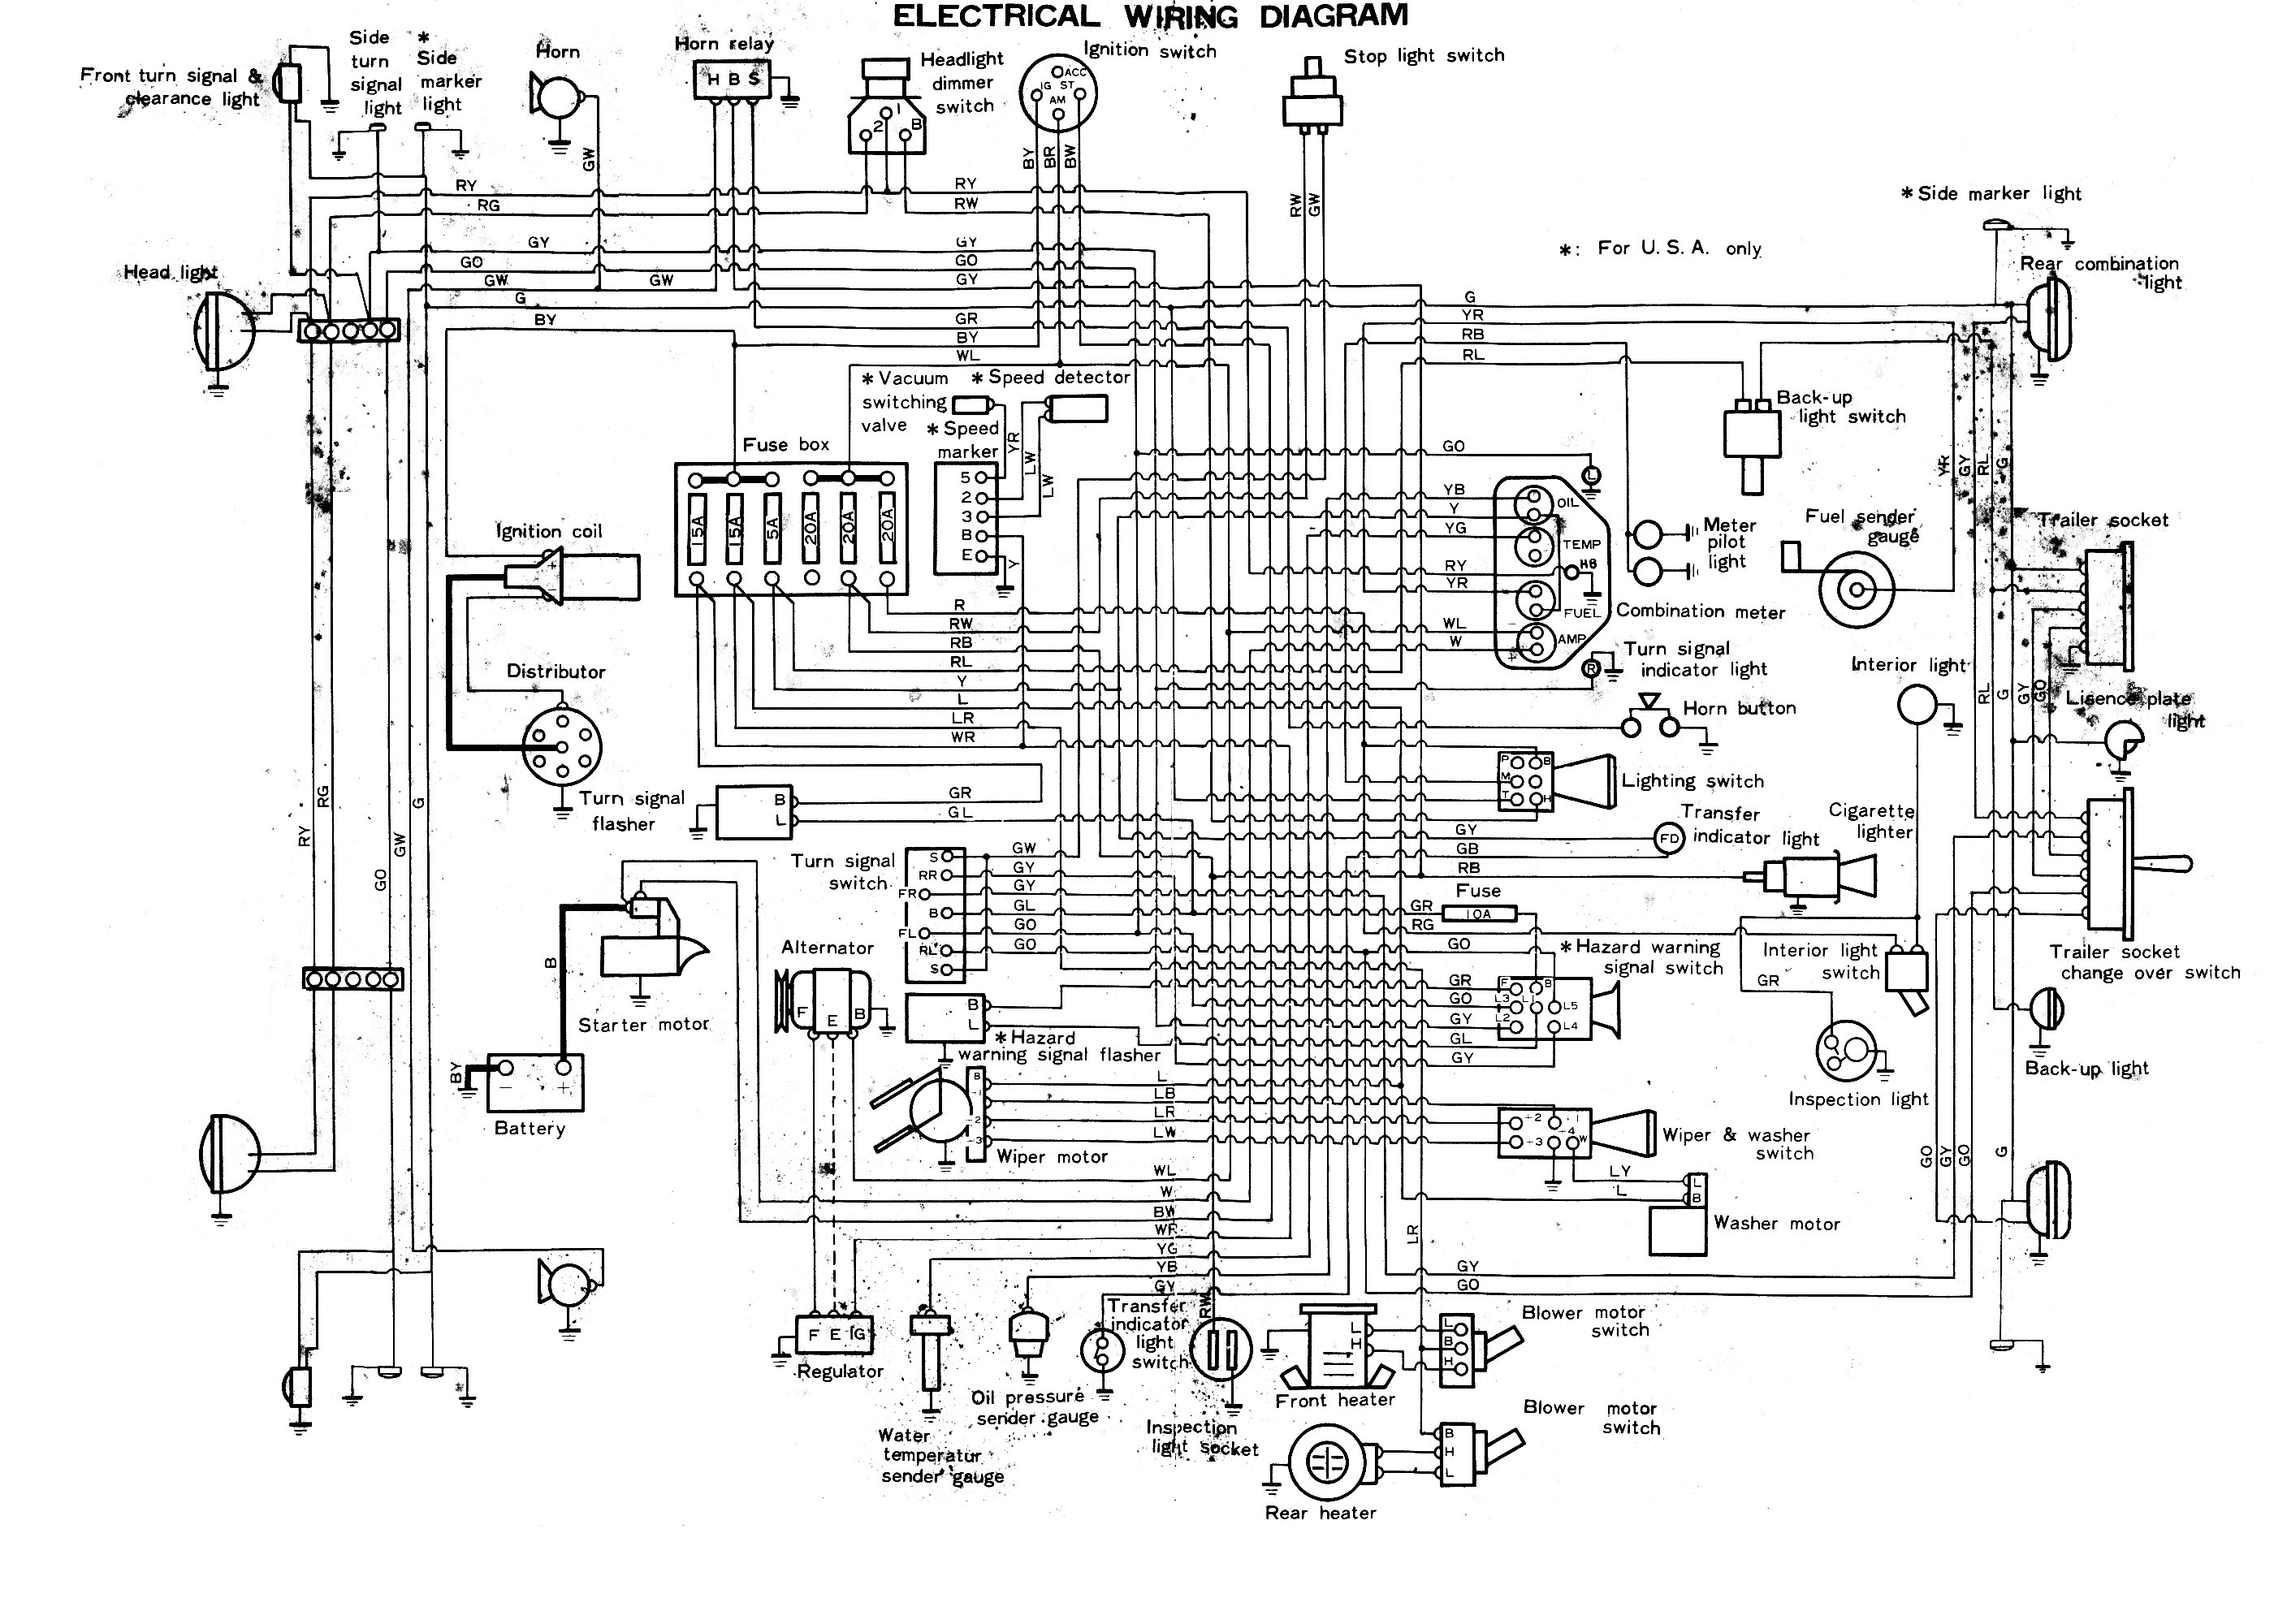 2007 pt cruiser engine diagram get free image about wiring diagram rh gsretail co